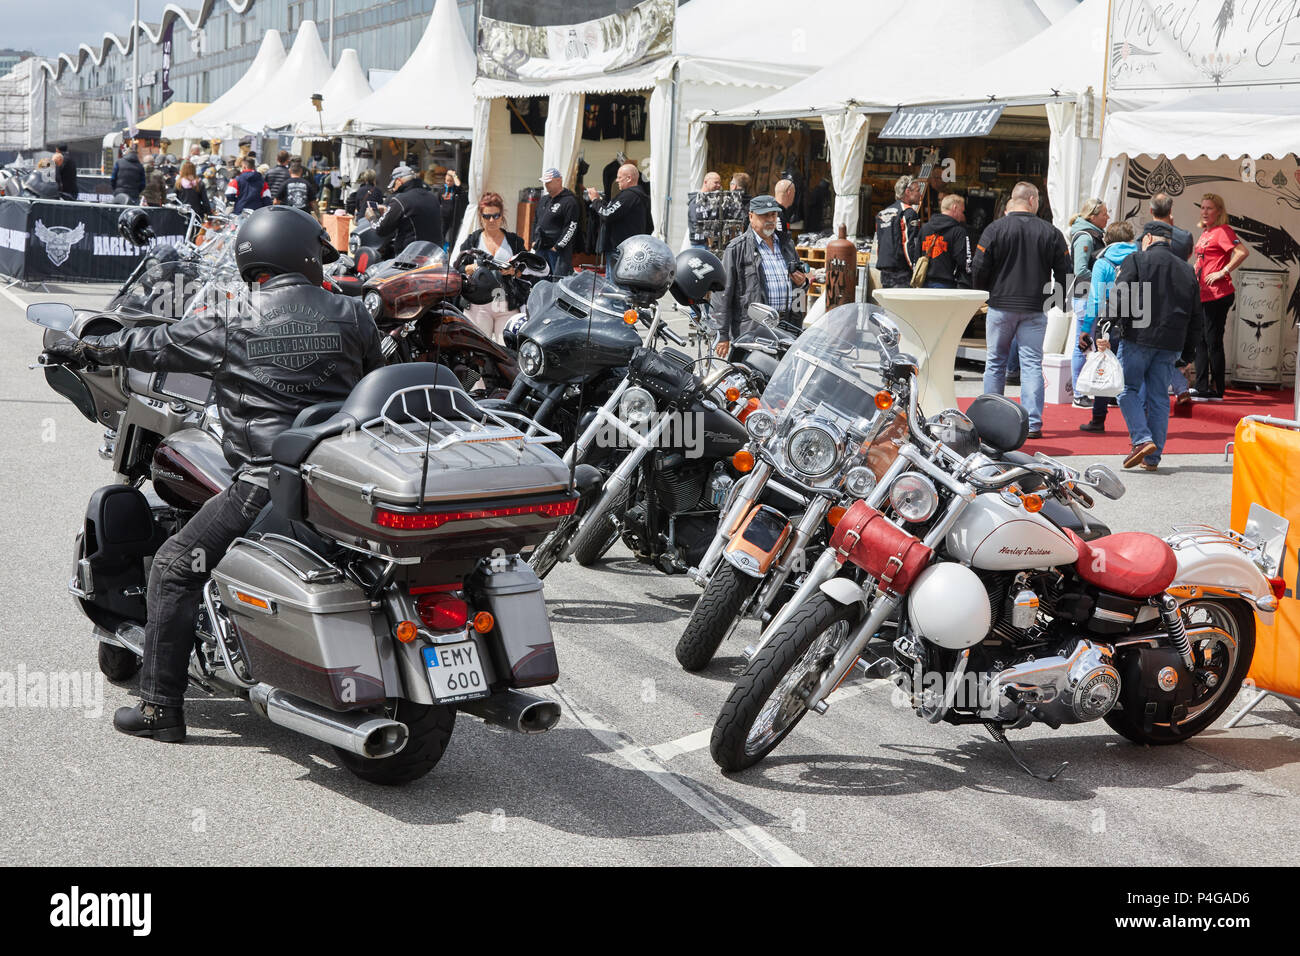 Hamburg, Germany  22nd June, 2018  Harley Davidson